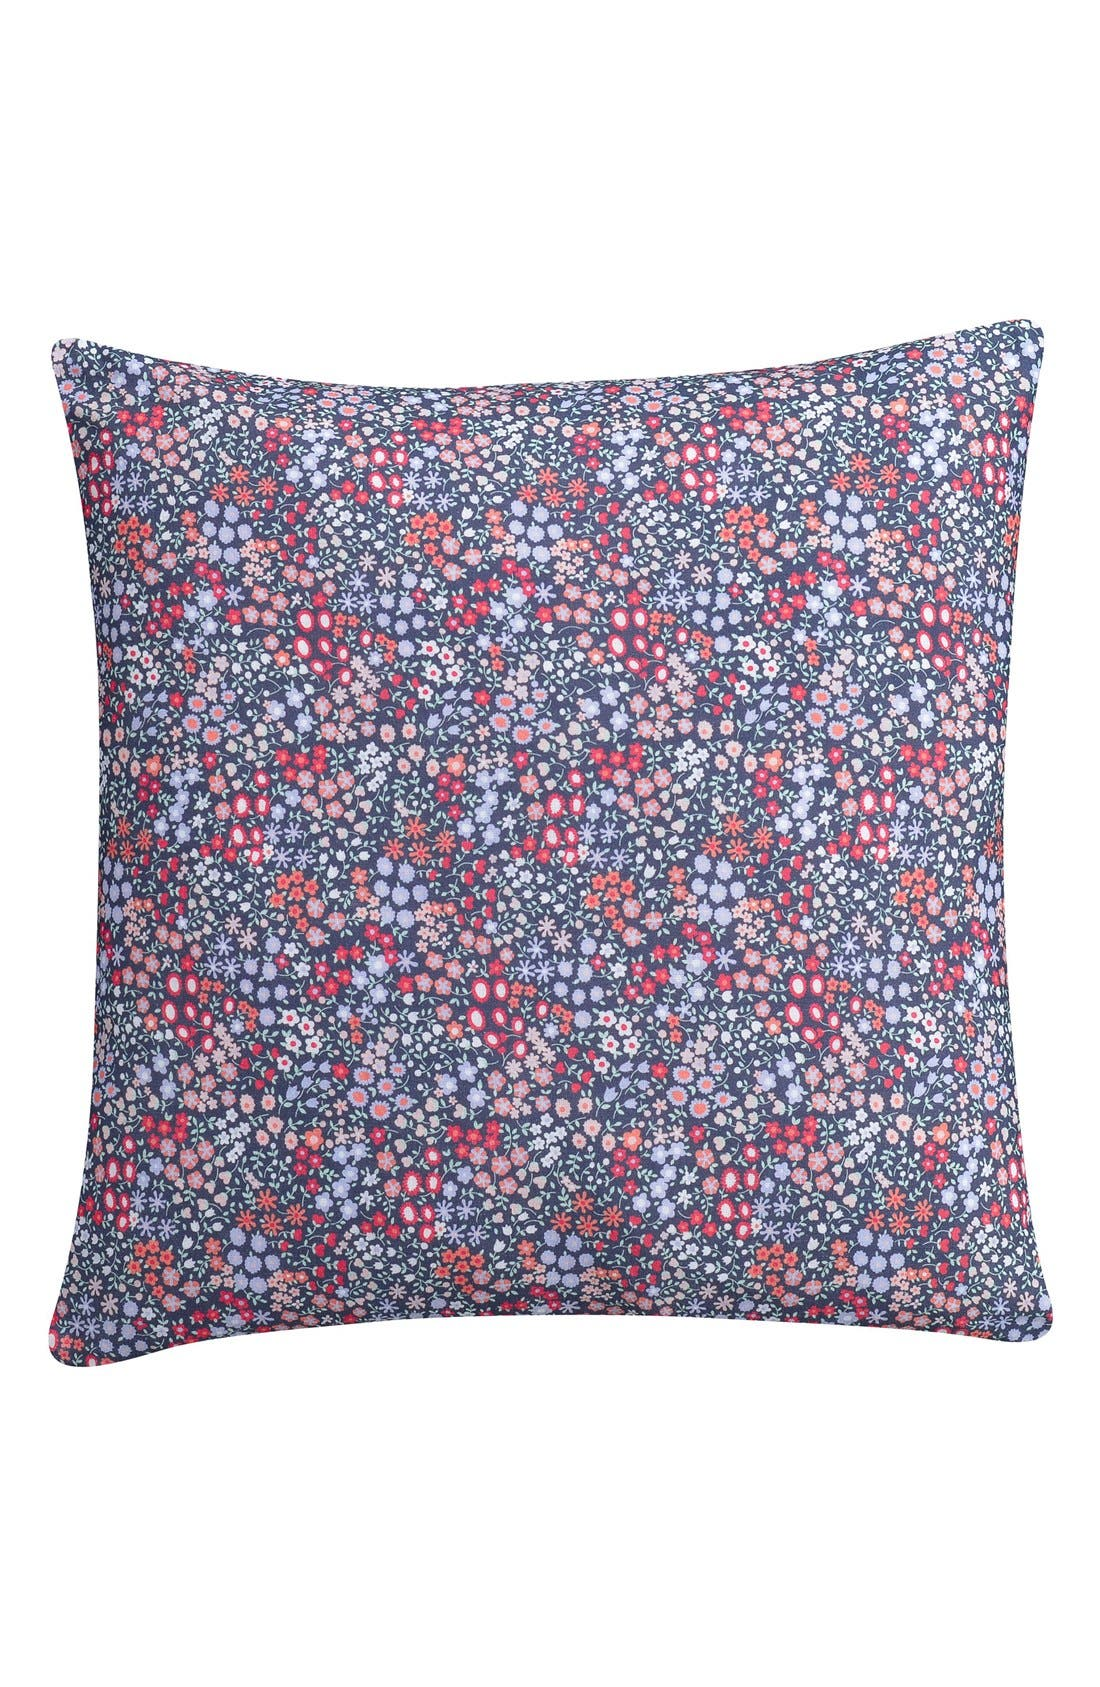 'Sketch' Floral Print Accent Pillow,                         Main,                         color, 600